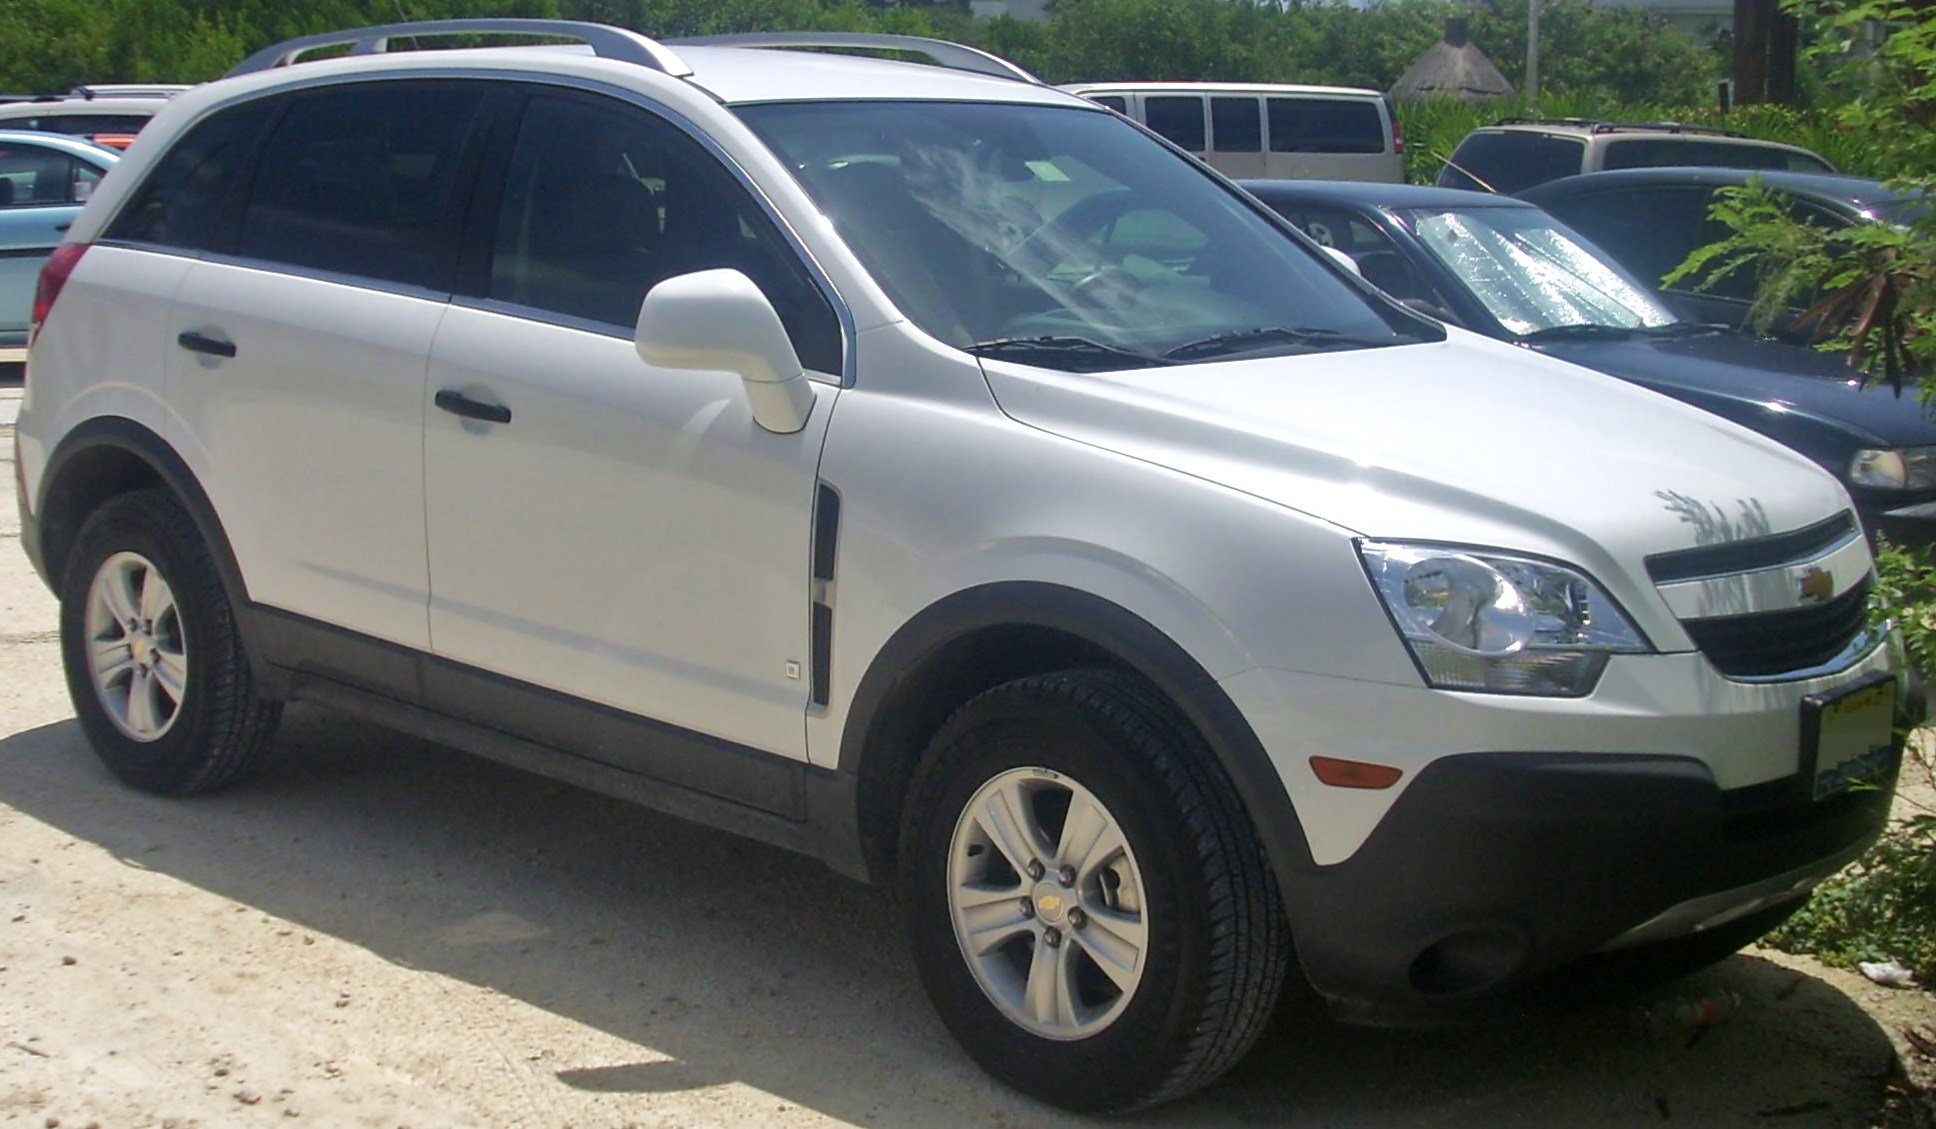 file09 chevrolet captiva sportjpg wikimedia commons